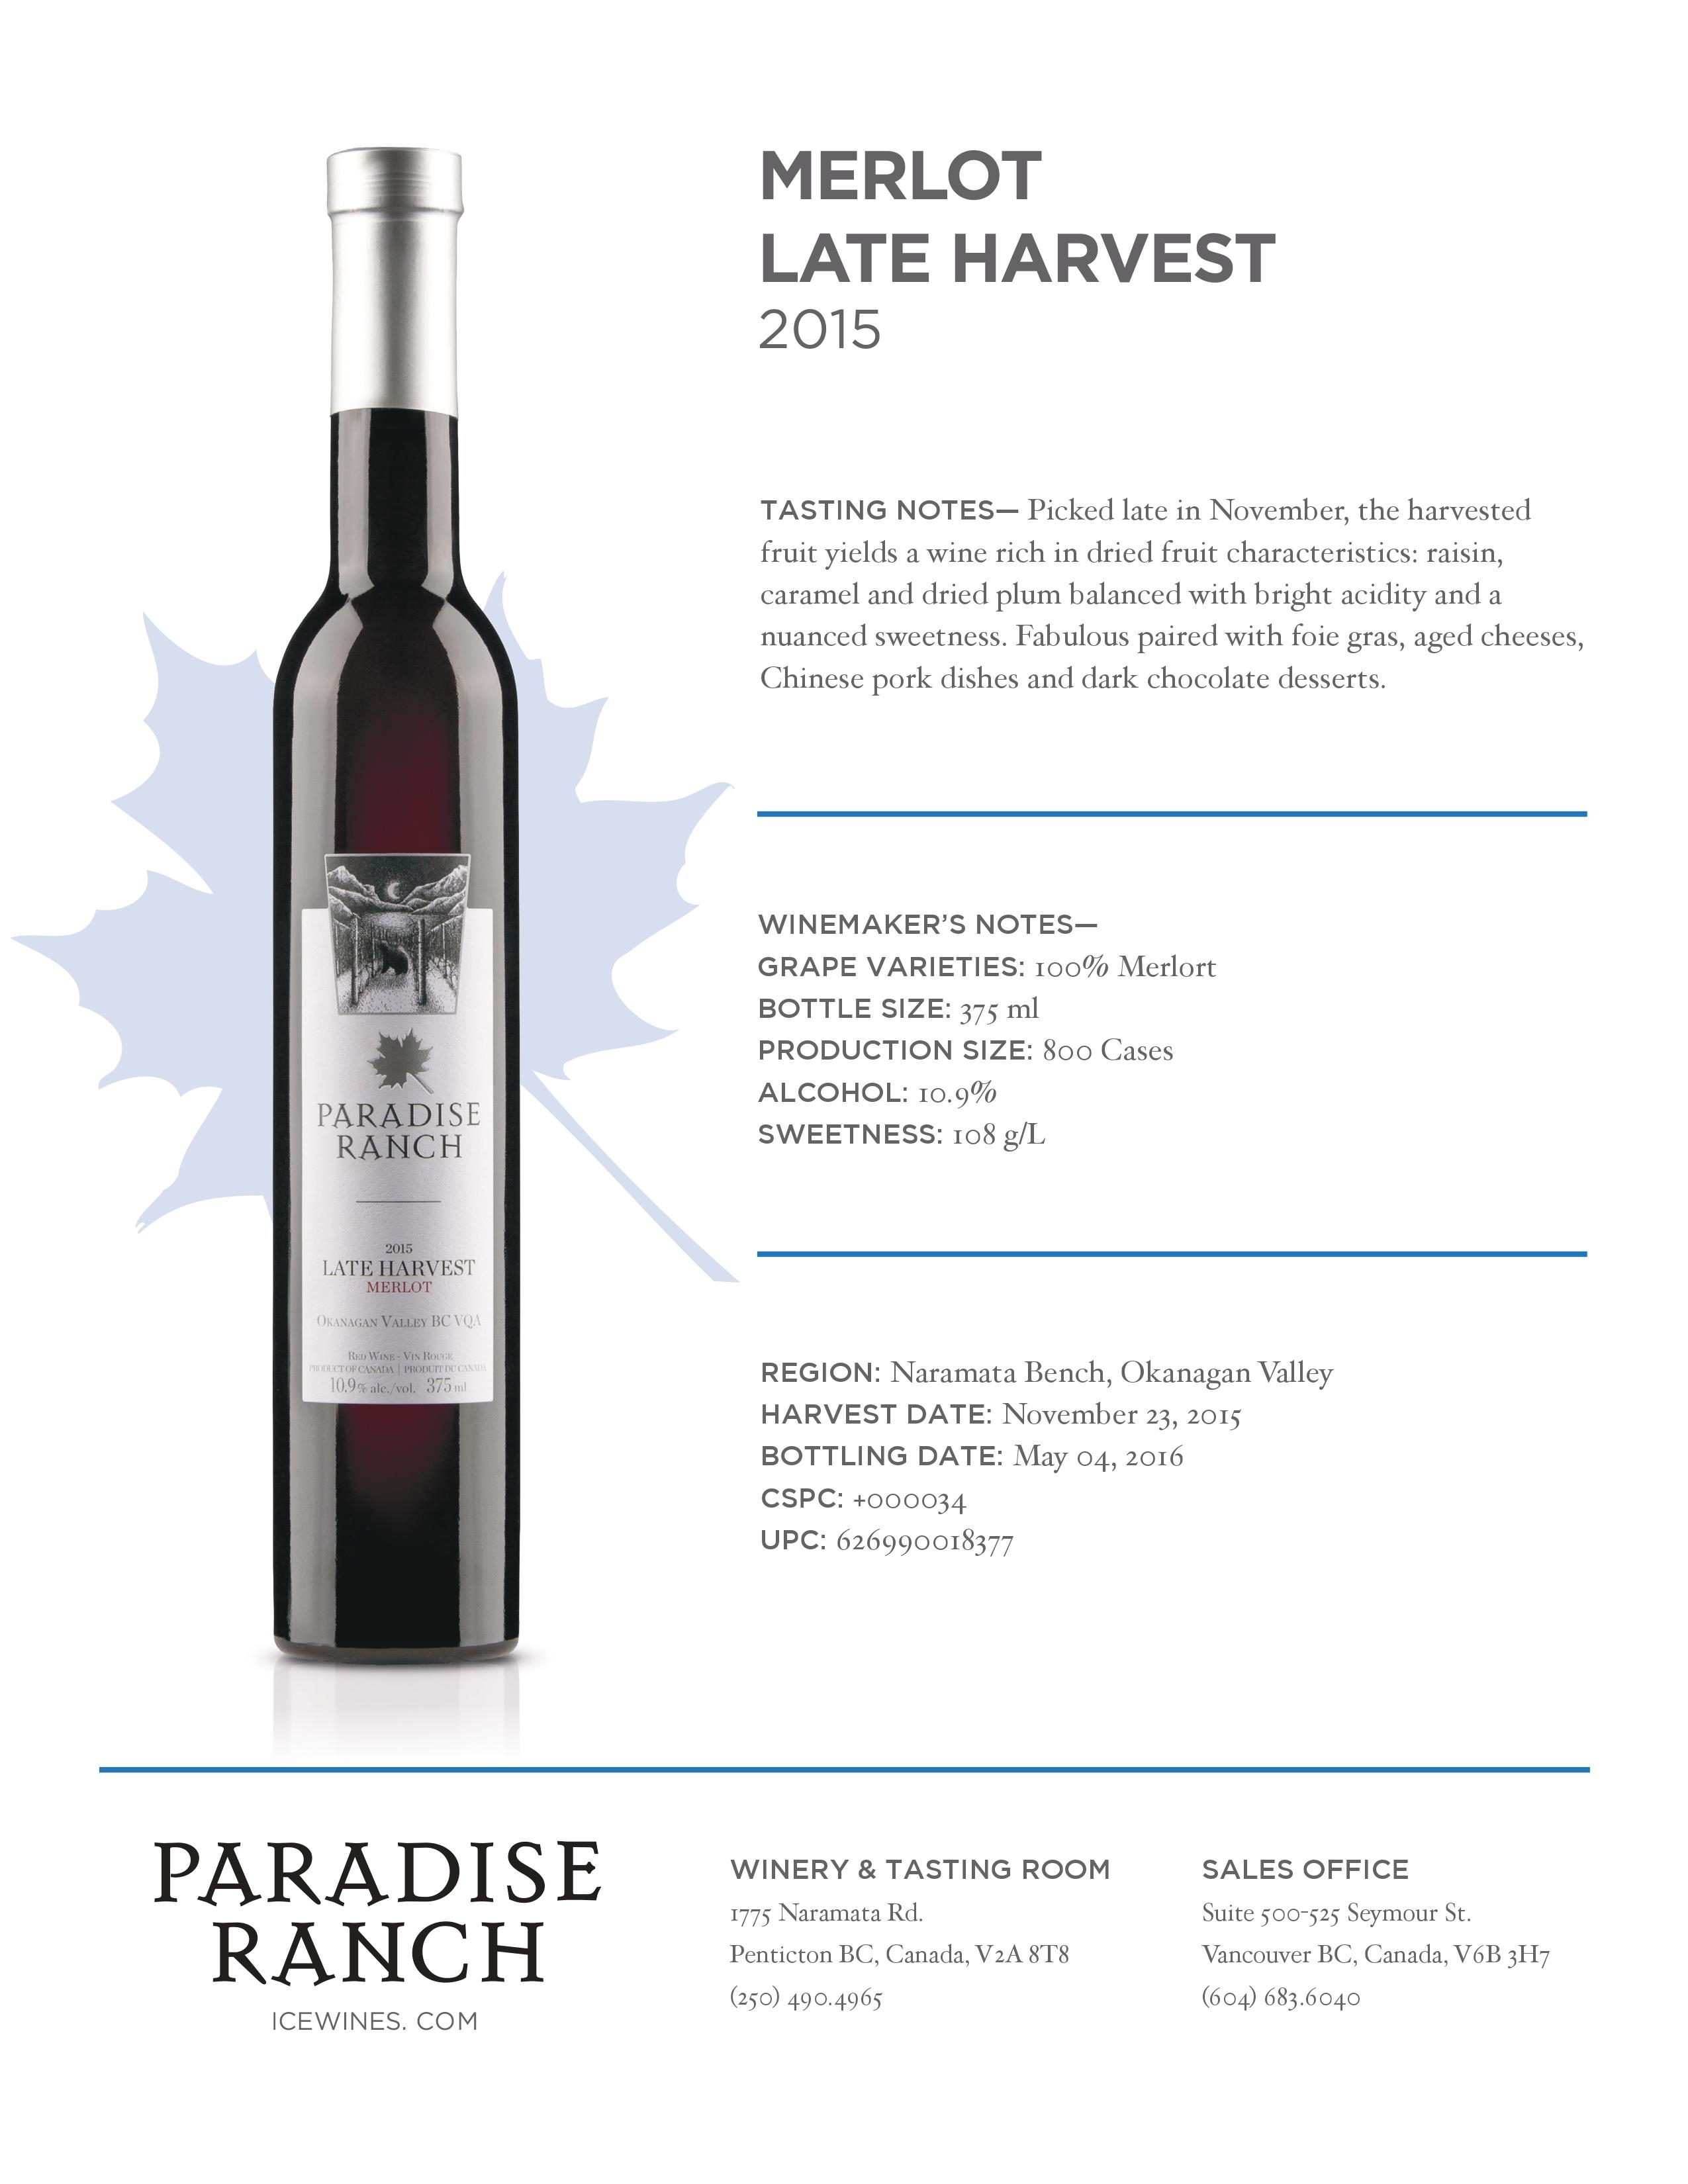 TASTING NOTES— Picked late in November, the harvested fruit yields a wine rich in dried fruit characteristics: raisin, caramel and dried plum balanced with bright acidity and a nuanced sweetness. Fabulous paired with foie gras, aged cheeses, Chinese pork dishes and dark chocolate desserts. REGION: Naramata Bench, Okanagan Valley HARVEST DATE: November 23, 2015 BOTTLING DATE: May 04, 2016 CSPC: +000034 UPC: 626990018377